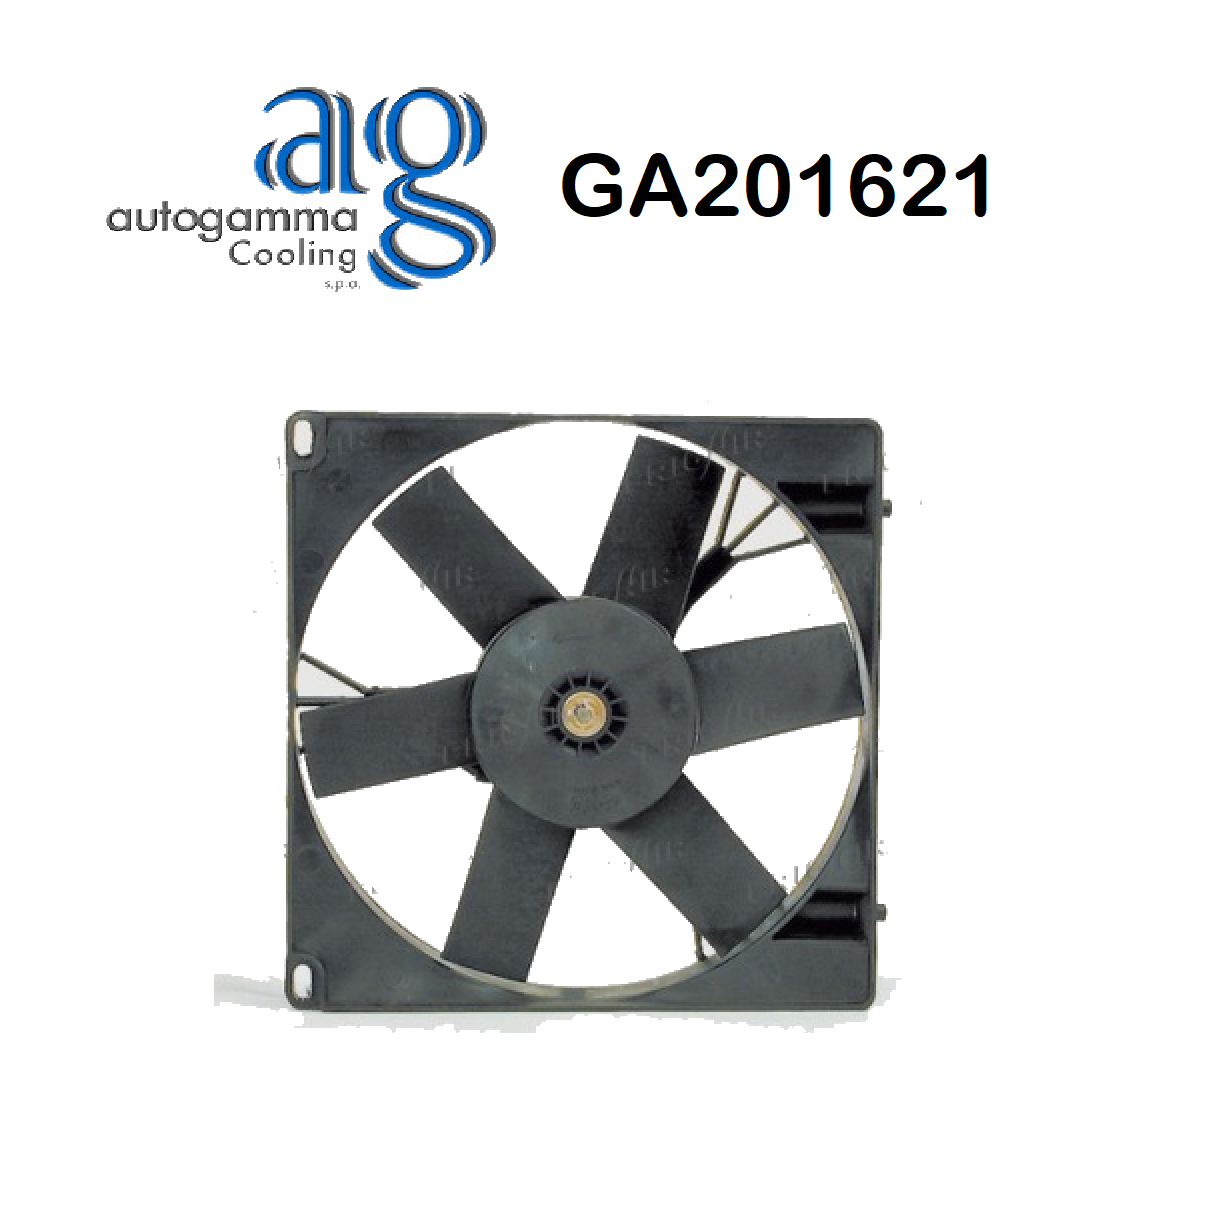 COOLING FAN ENGINE PEUGEOT 305 AUTOGAMMA FOR 125088